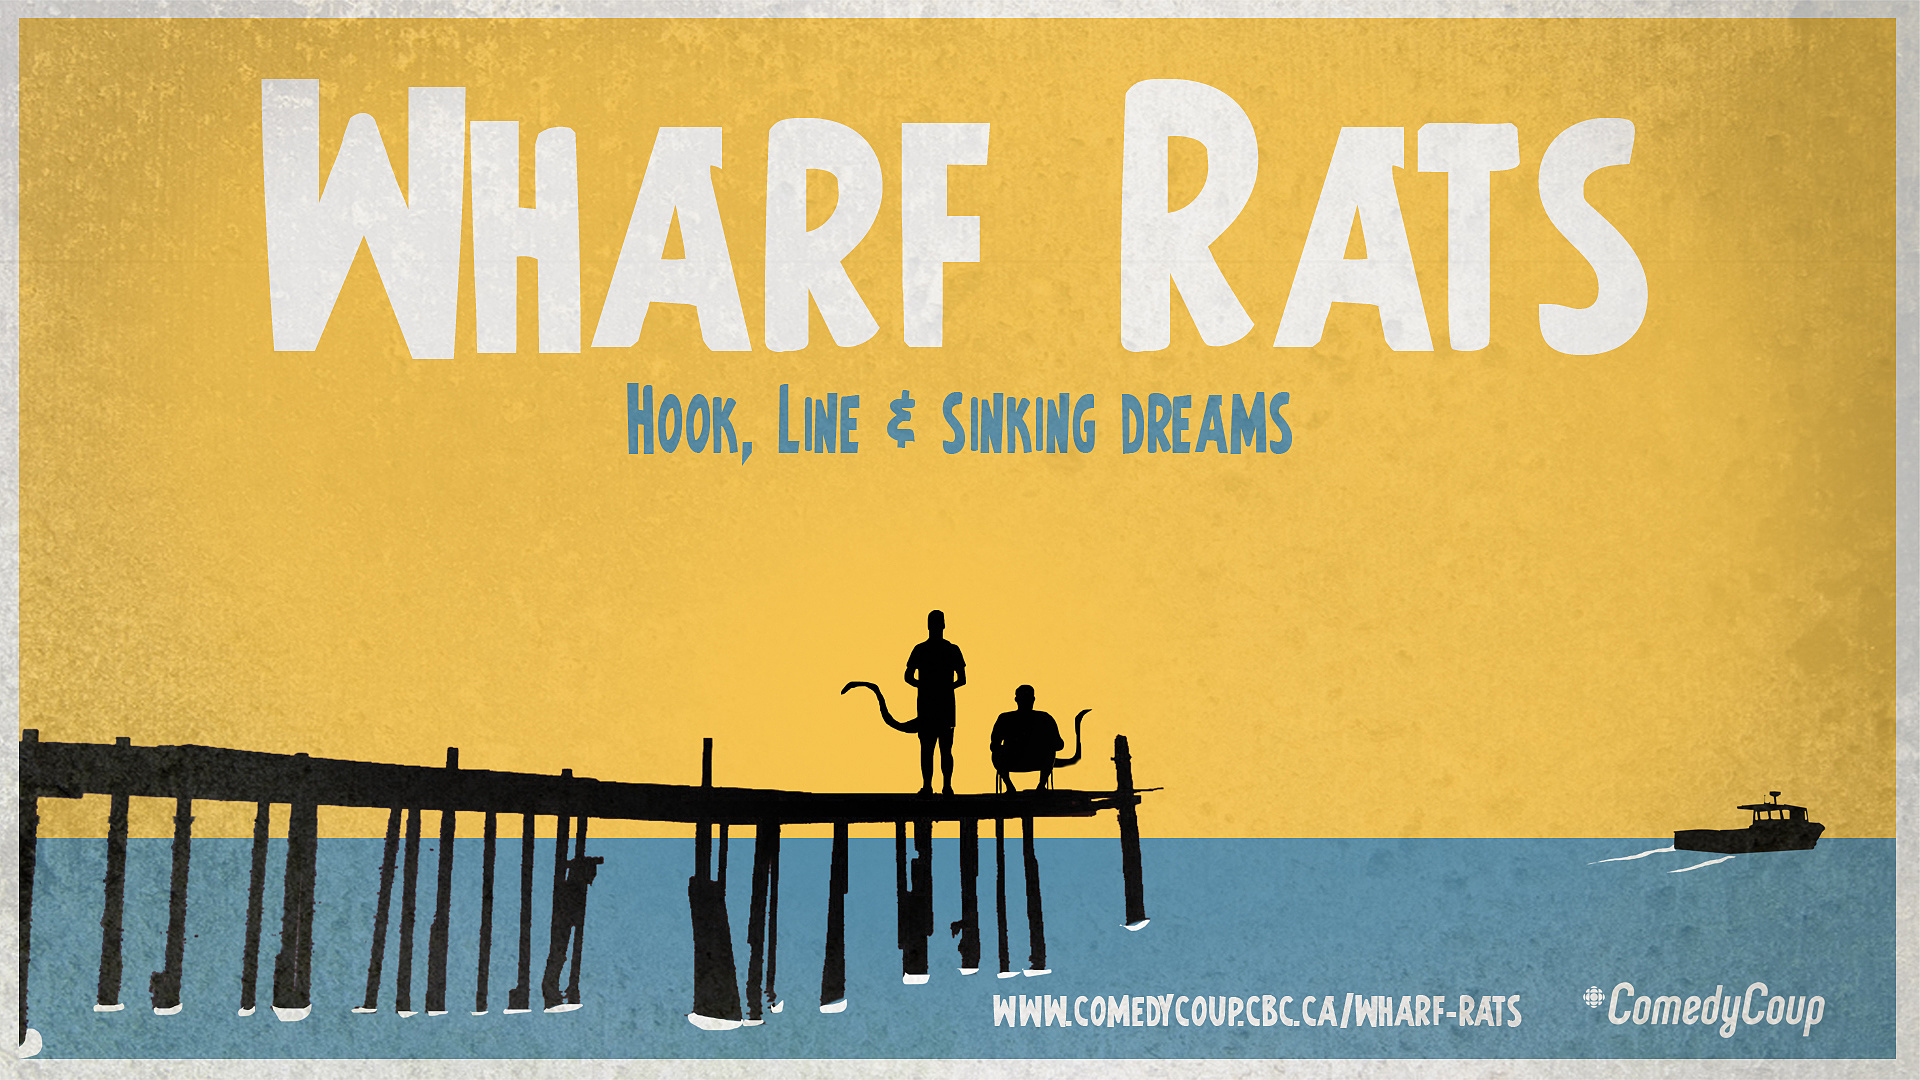 Week 4 Key It: Poster A Wharf Rats